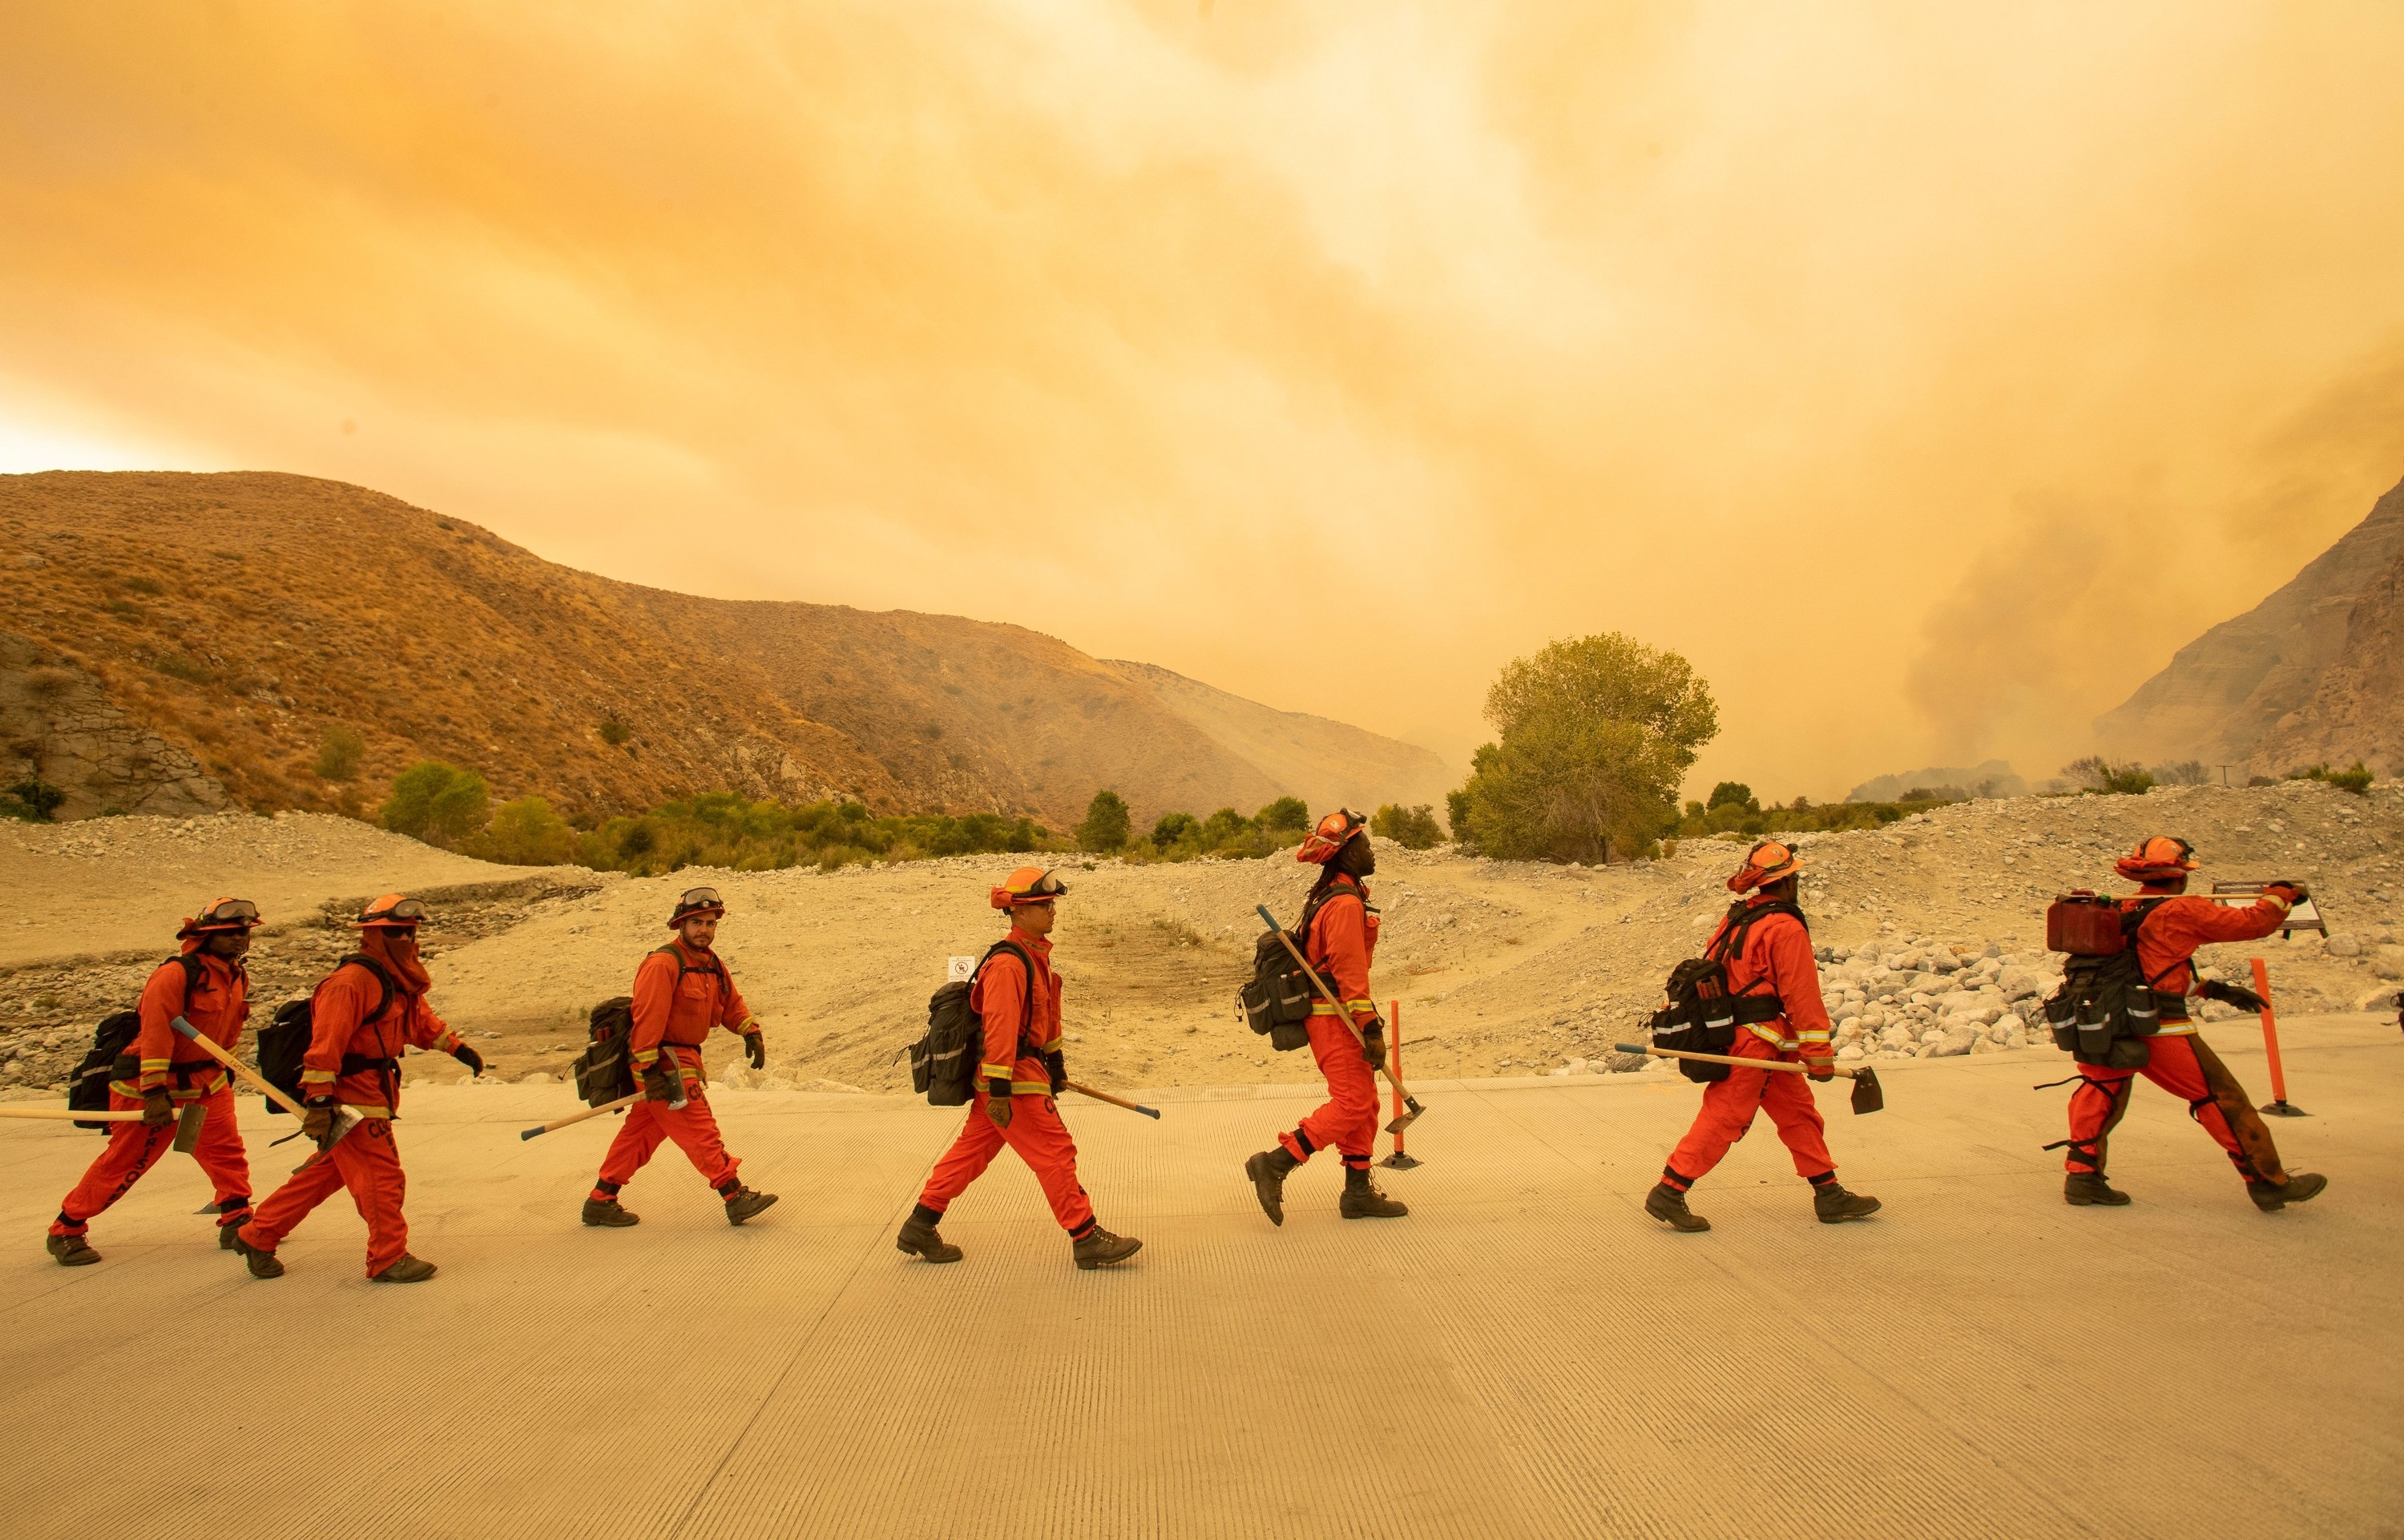 Men in orange firefighting suits walk in a line carrying axes  along a rocky ridge with a yellow-orange sky caused by smoke